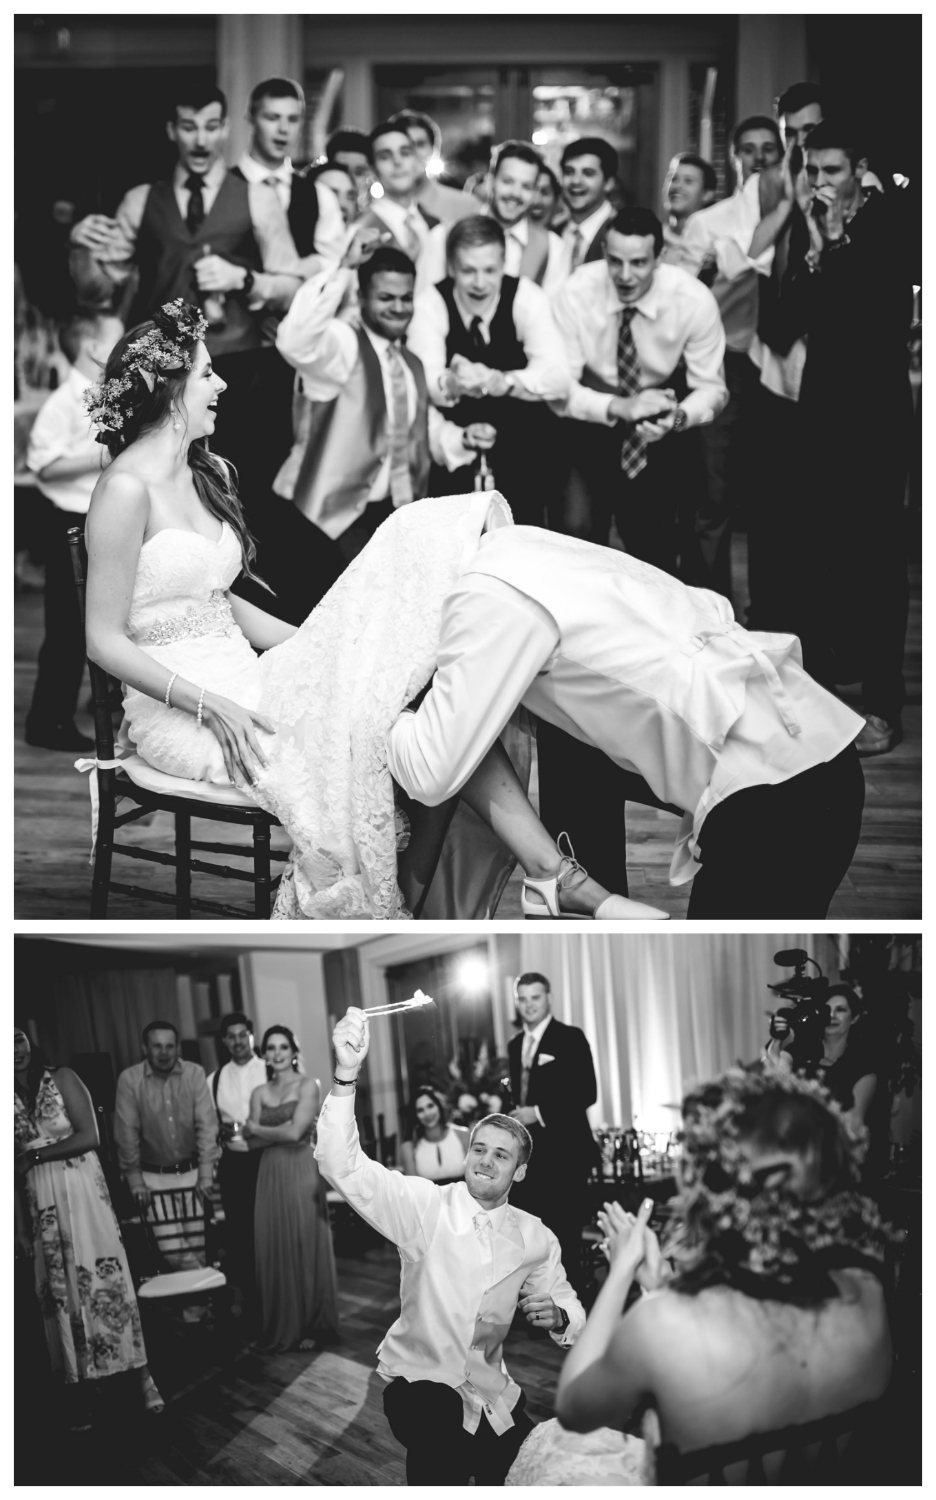 Garter toss at Highlands Ranch Mansion.   hotographed by JMGant Photography, Denver Colorado wedding photographer.